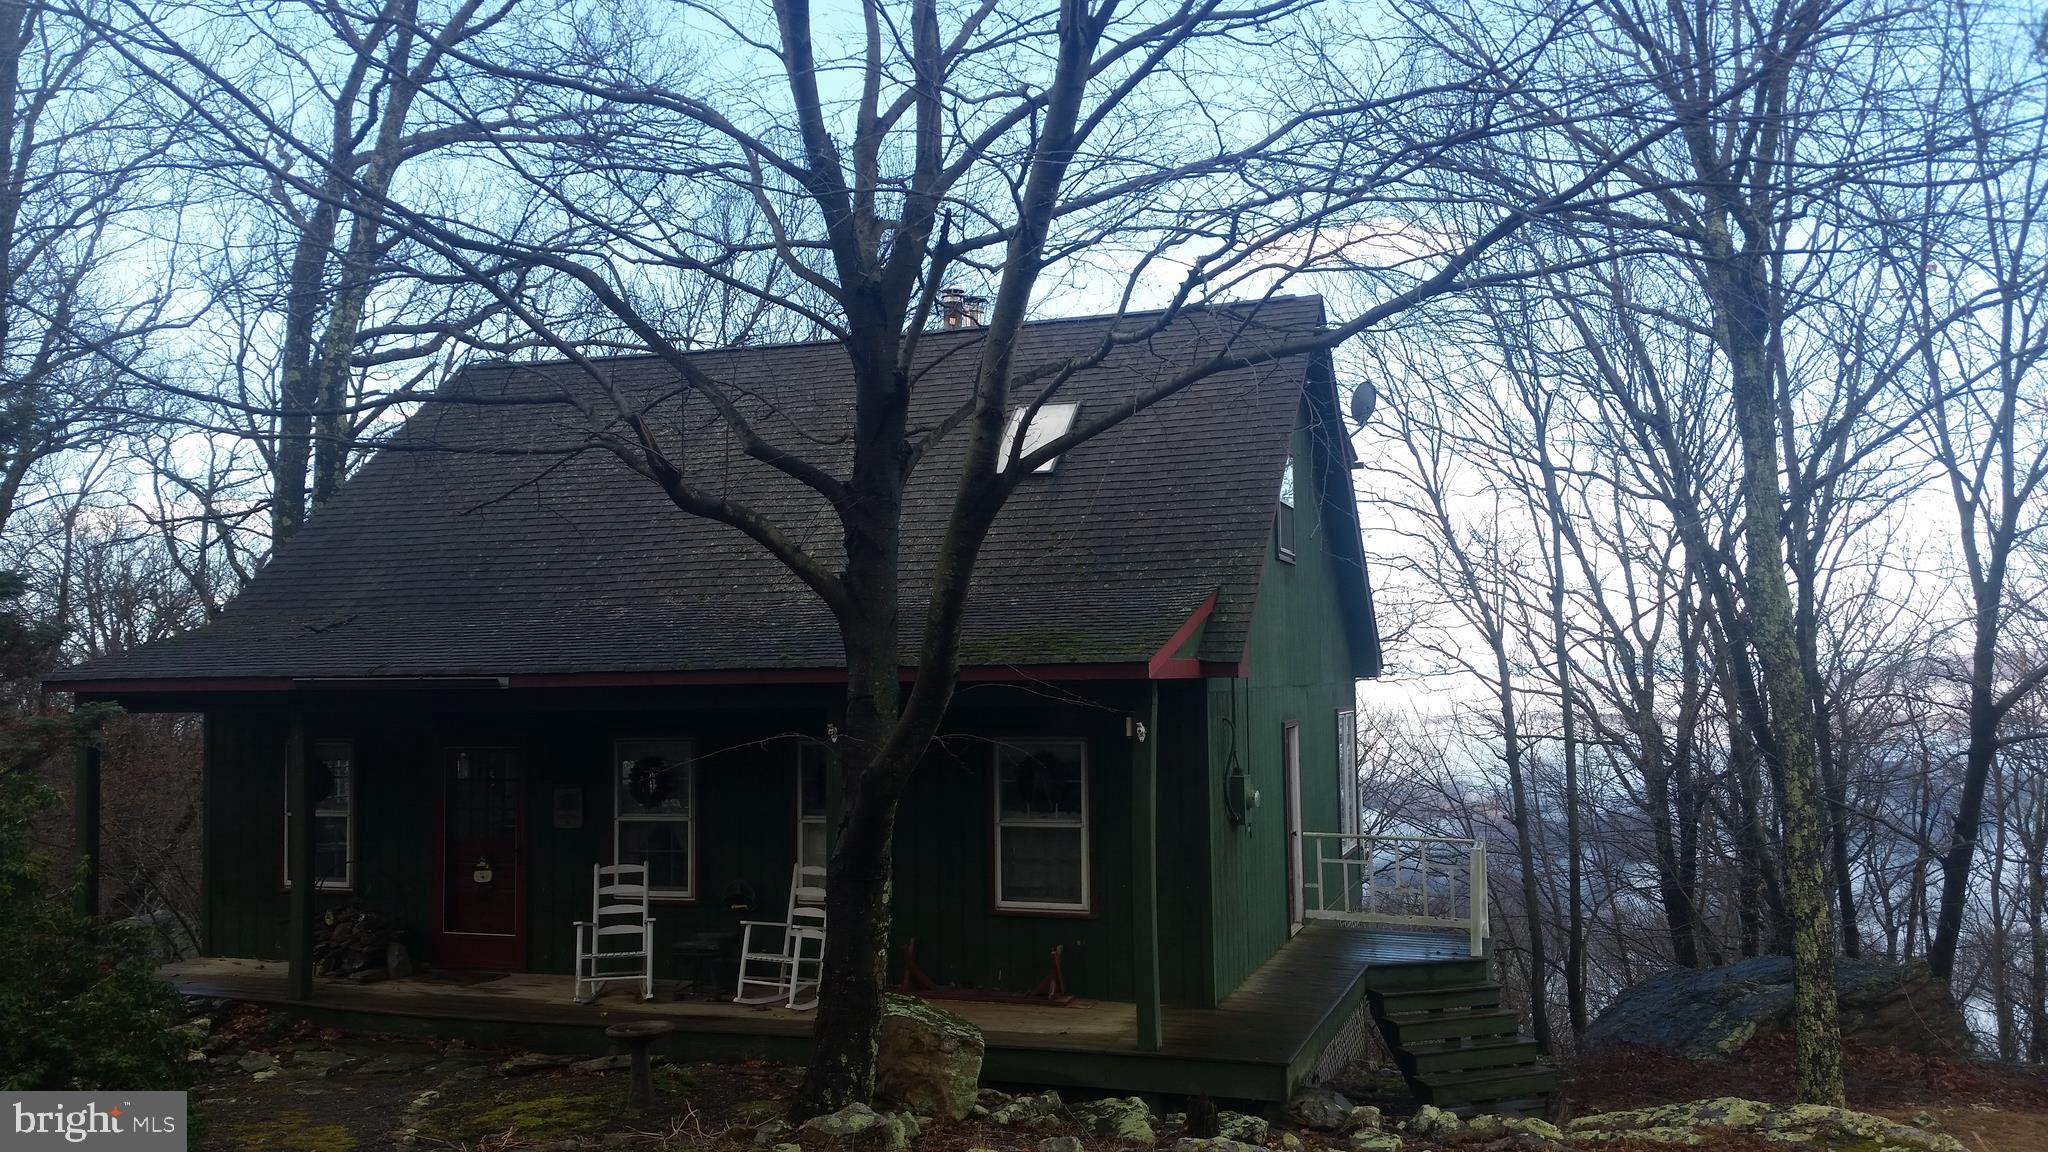 6 FIRE TOWER RD, GREAT CACAPON, WV 25422